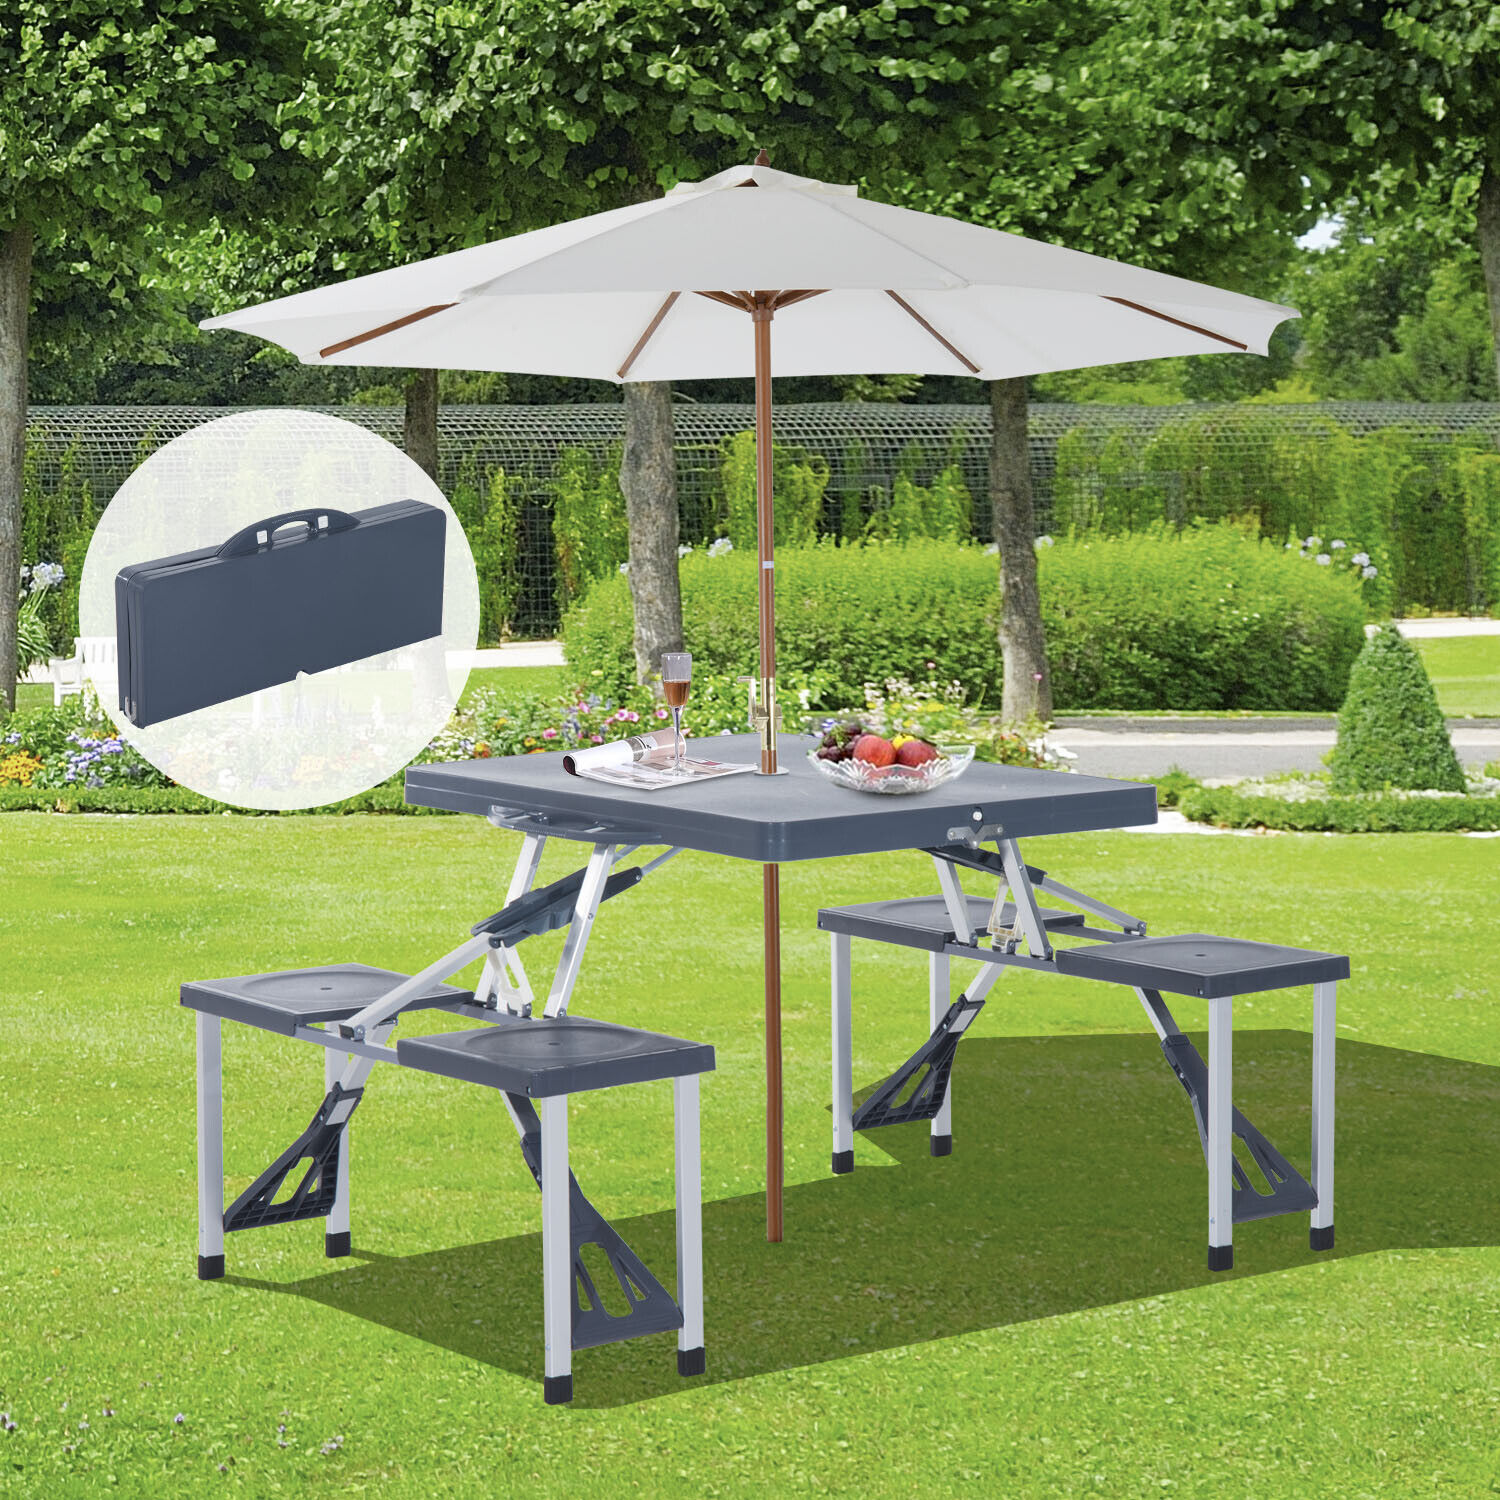 Outsunny Folding Picnic Table Chair Set Camping Aluminium Frame w/ Suitcase WAS £93.99 NOW £42.99 w/code PARCEL10 @ eBay